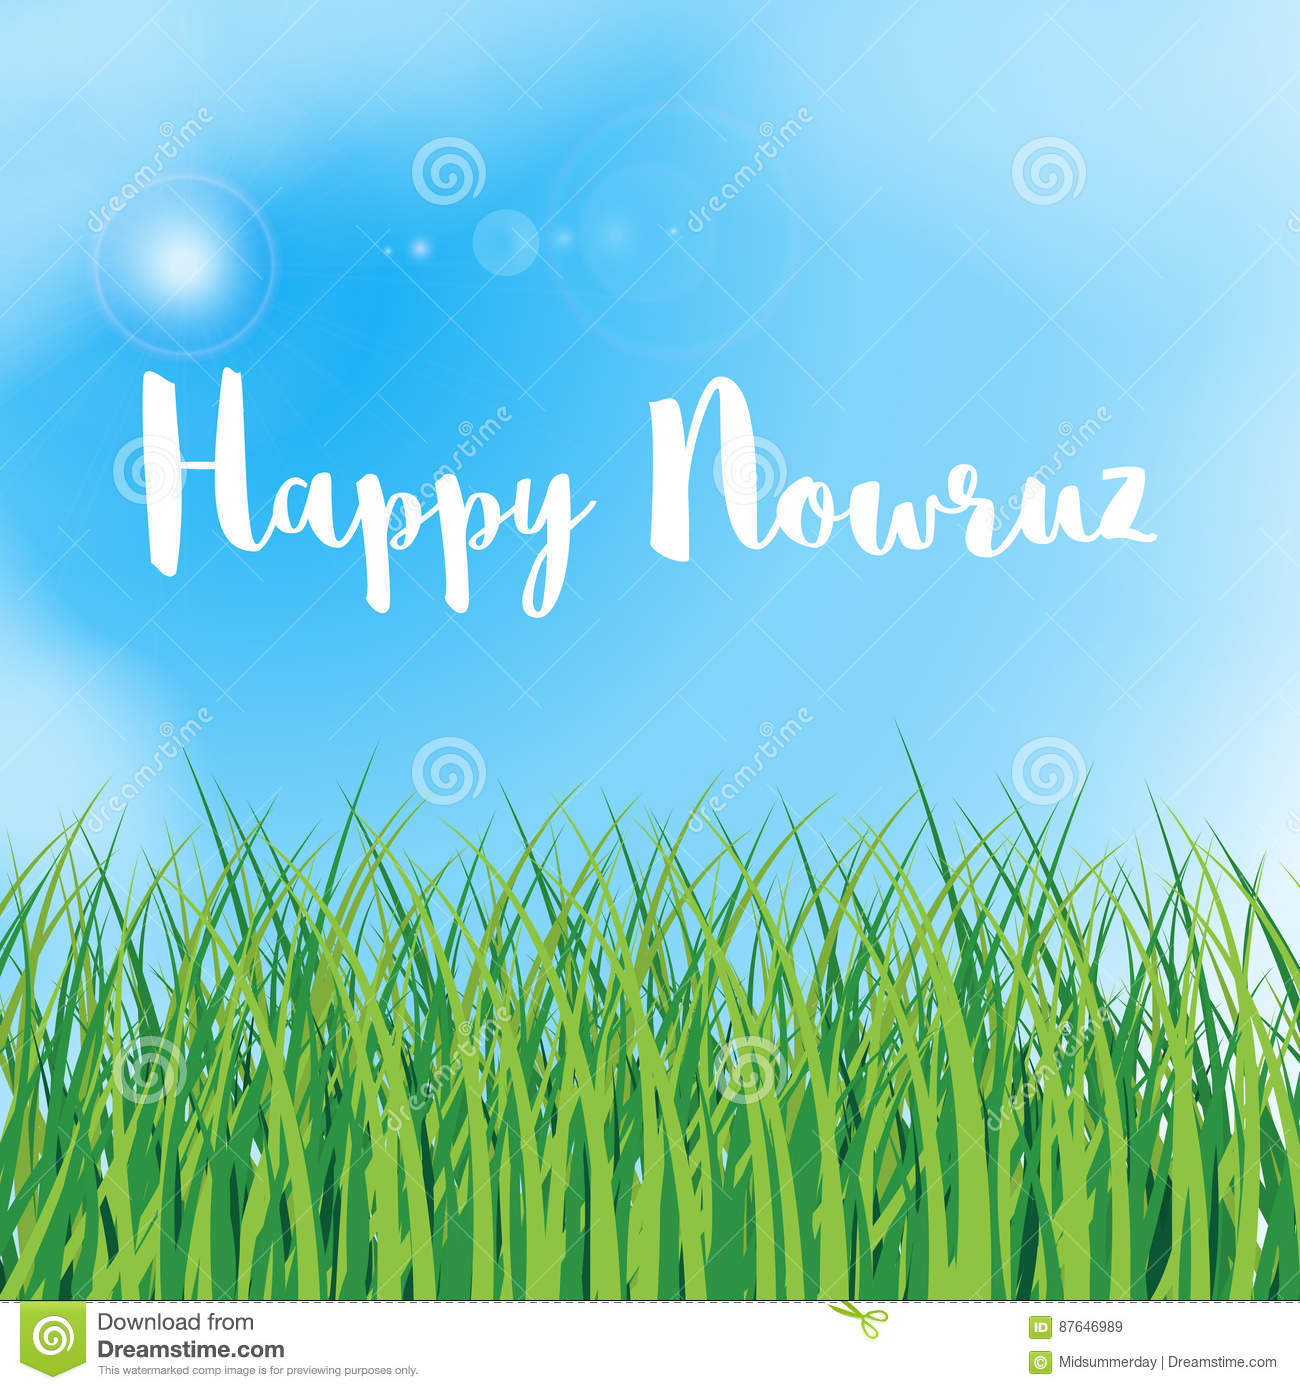 Happy Nowruz Greeting Card Iranian Persian New Year March Equinox